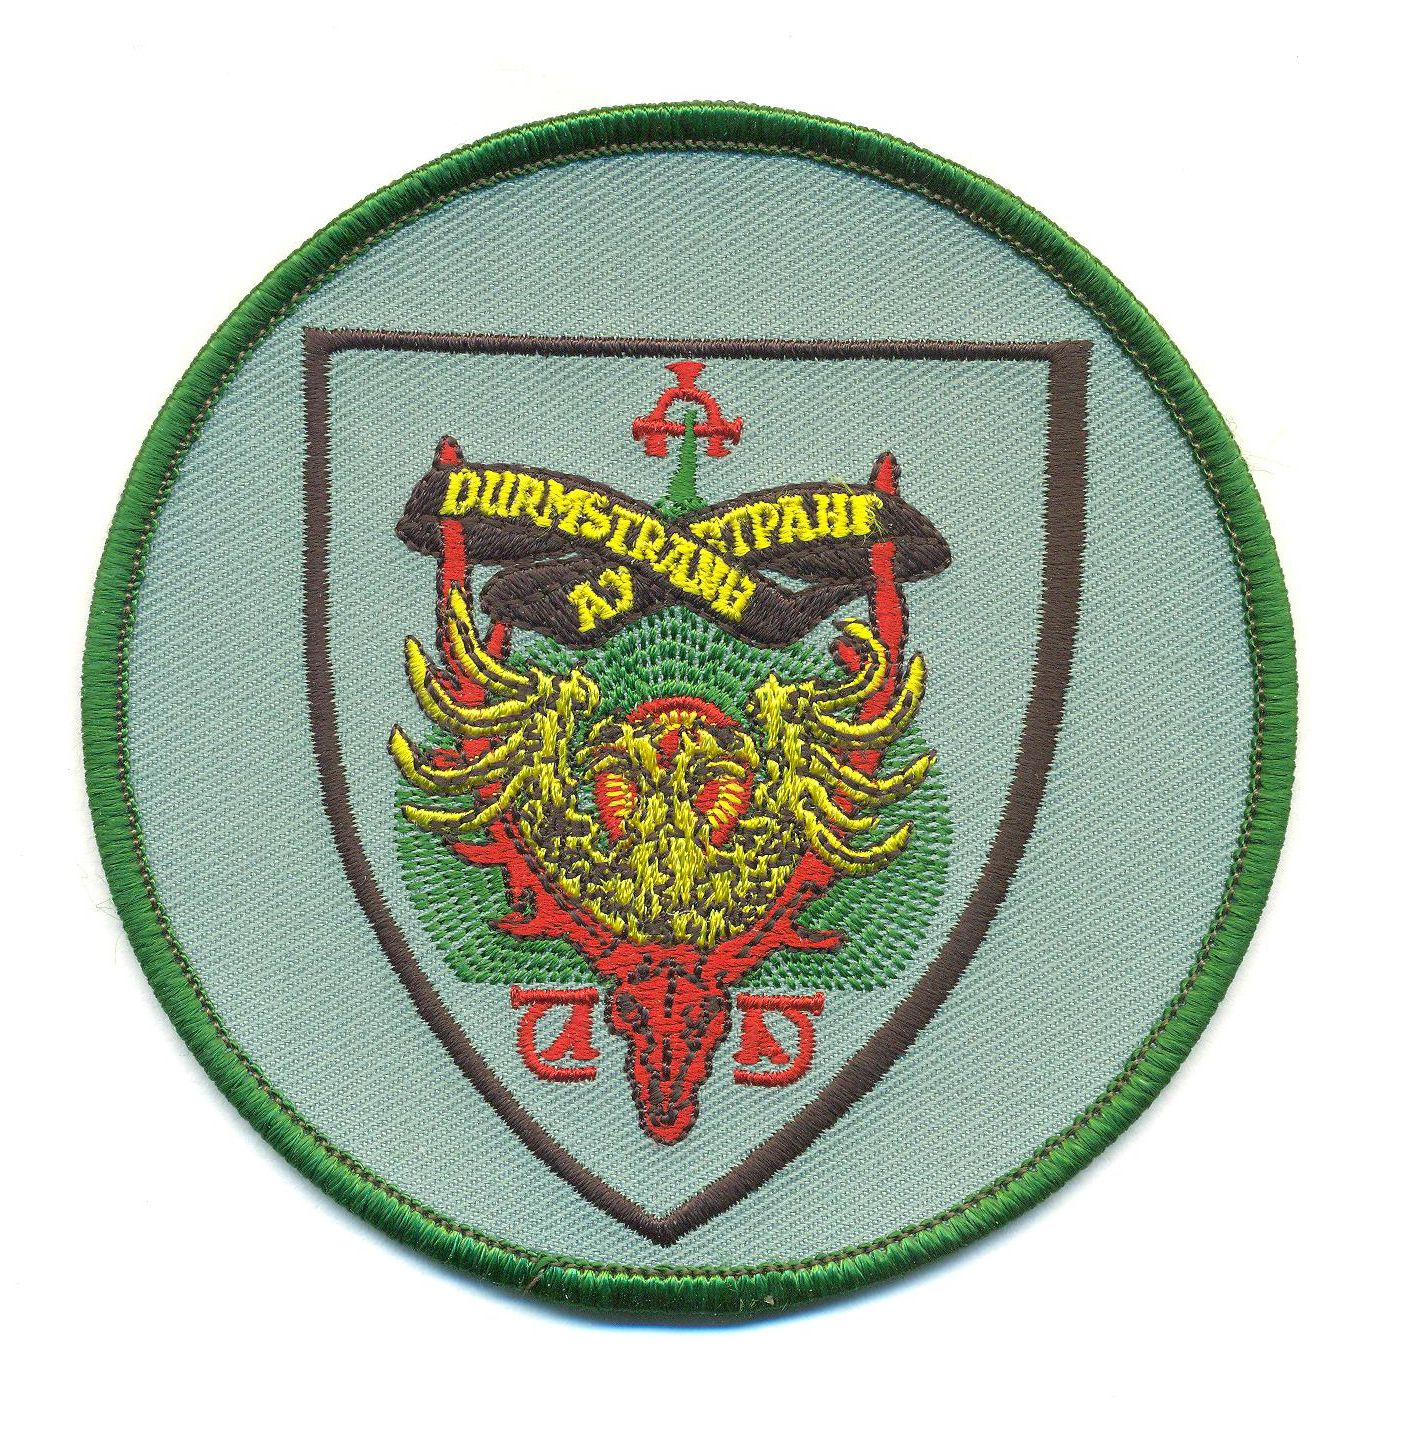 Harry Potter Goblet Of Fire Durmstrang Round Crest 4 Patch Scifi Geeks Harry potter was cast aside as soon as he was found out to have creature blood in him. harry potter goblet of fire durmstrang round crest 4 patch